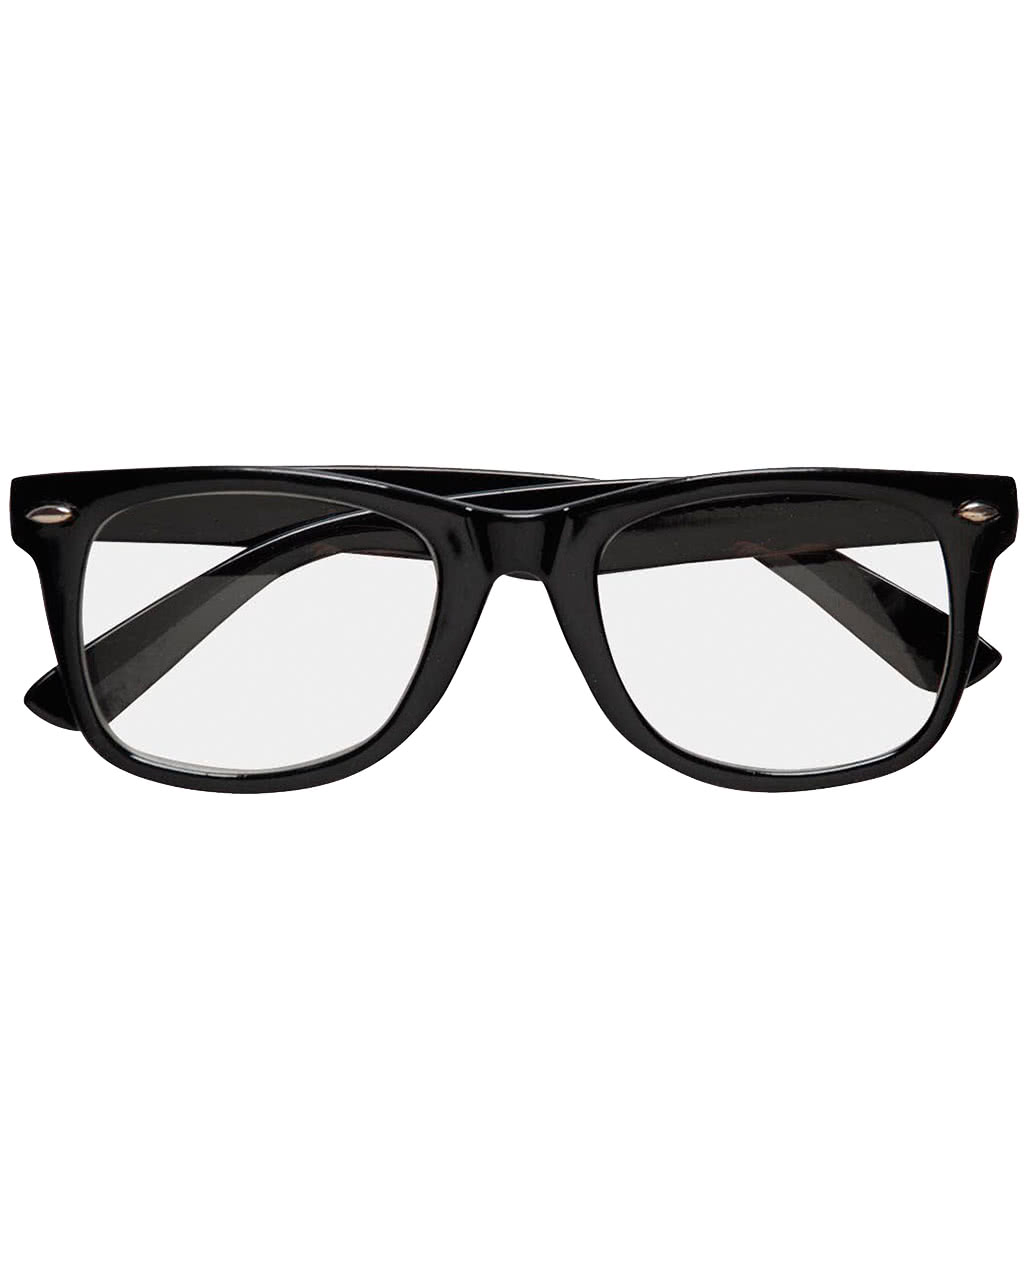 72647eaaac5 Black Nerd Glasses With Glasses Superman glasses